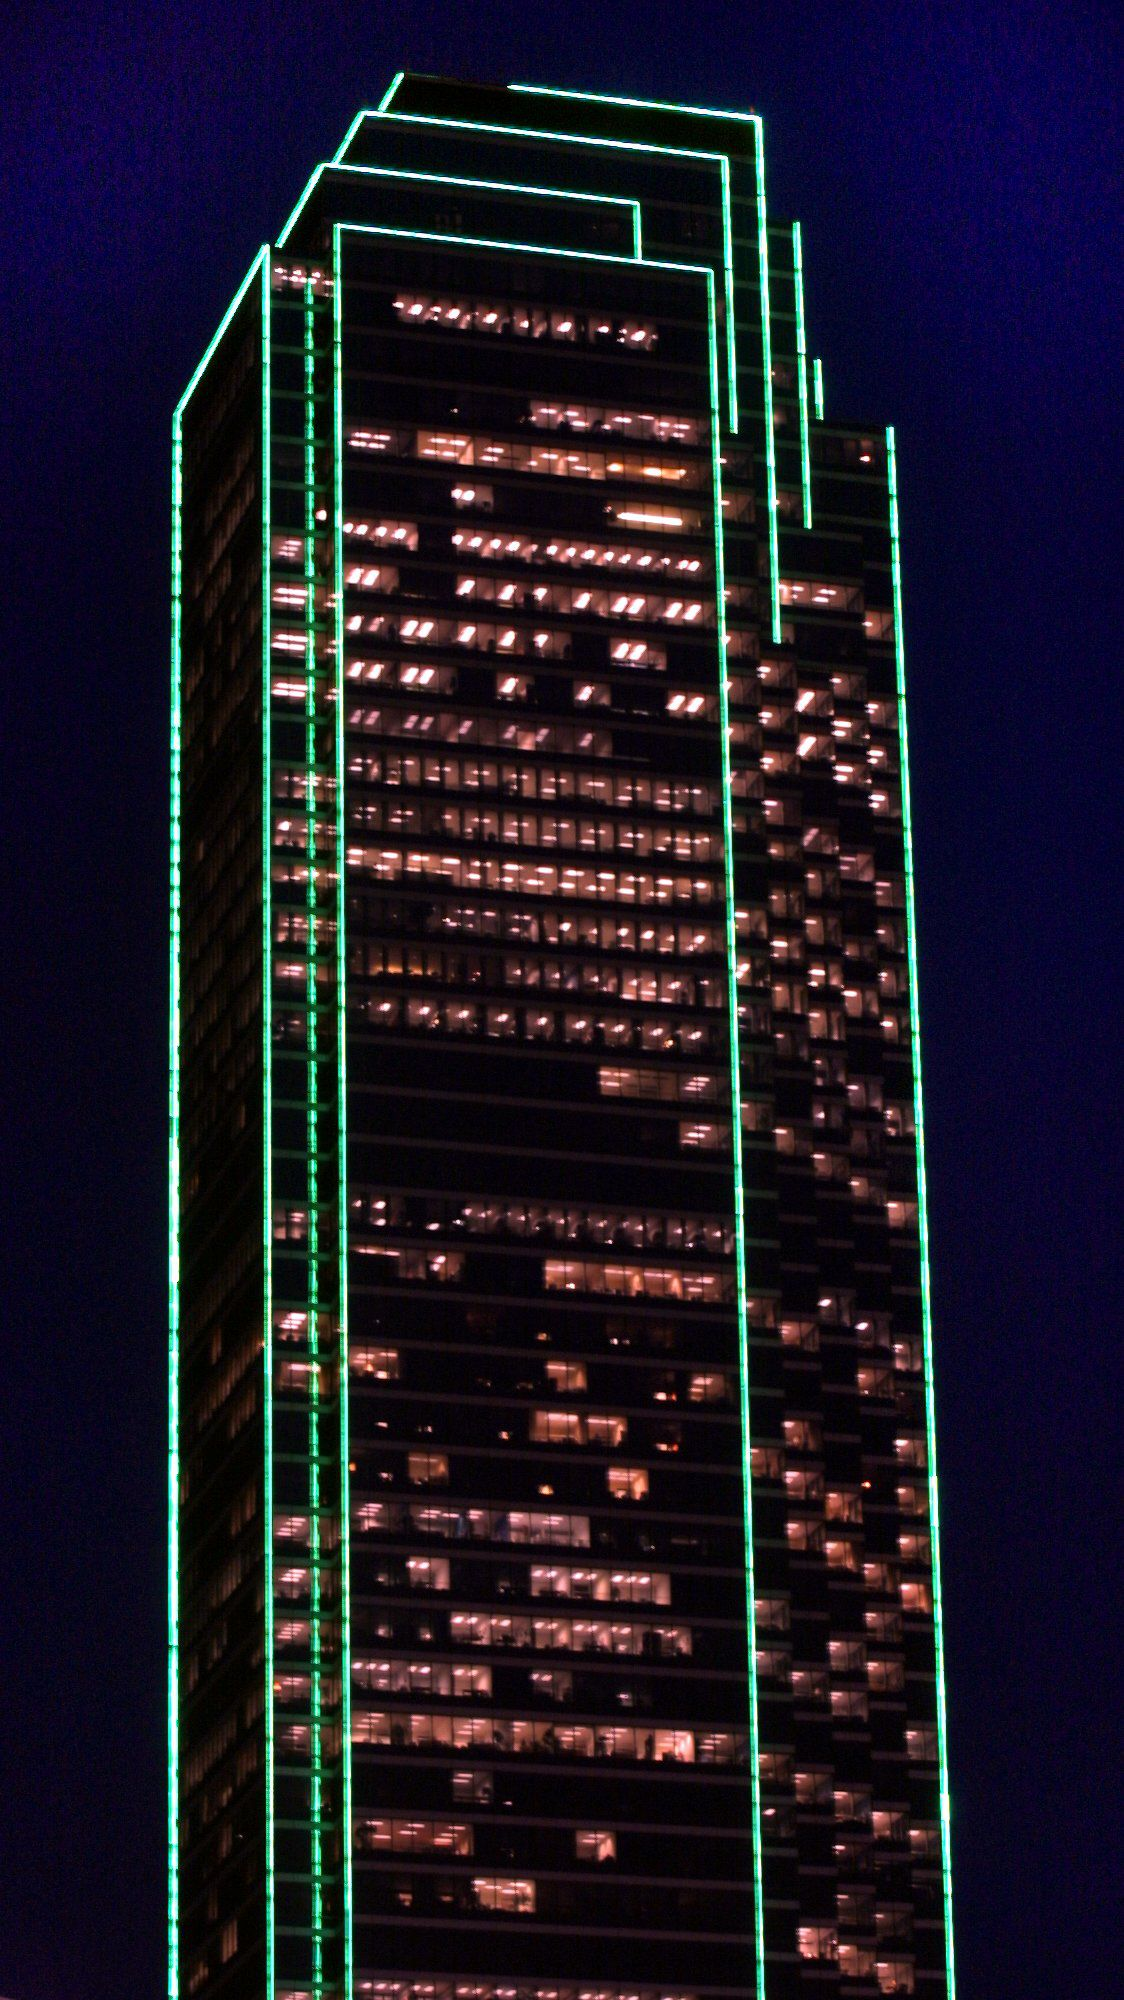 For most of its more than 30 years, the 72-story Bank of America Plaza tower has been outlined in green lights.